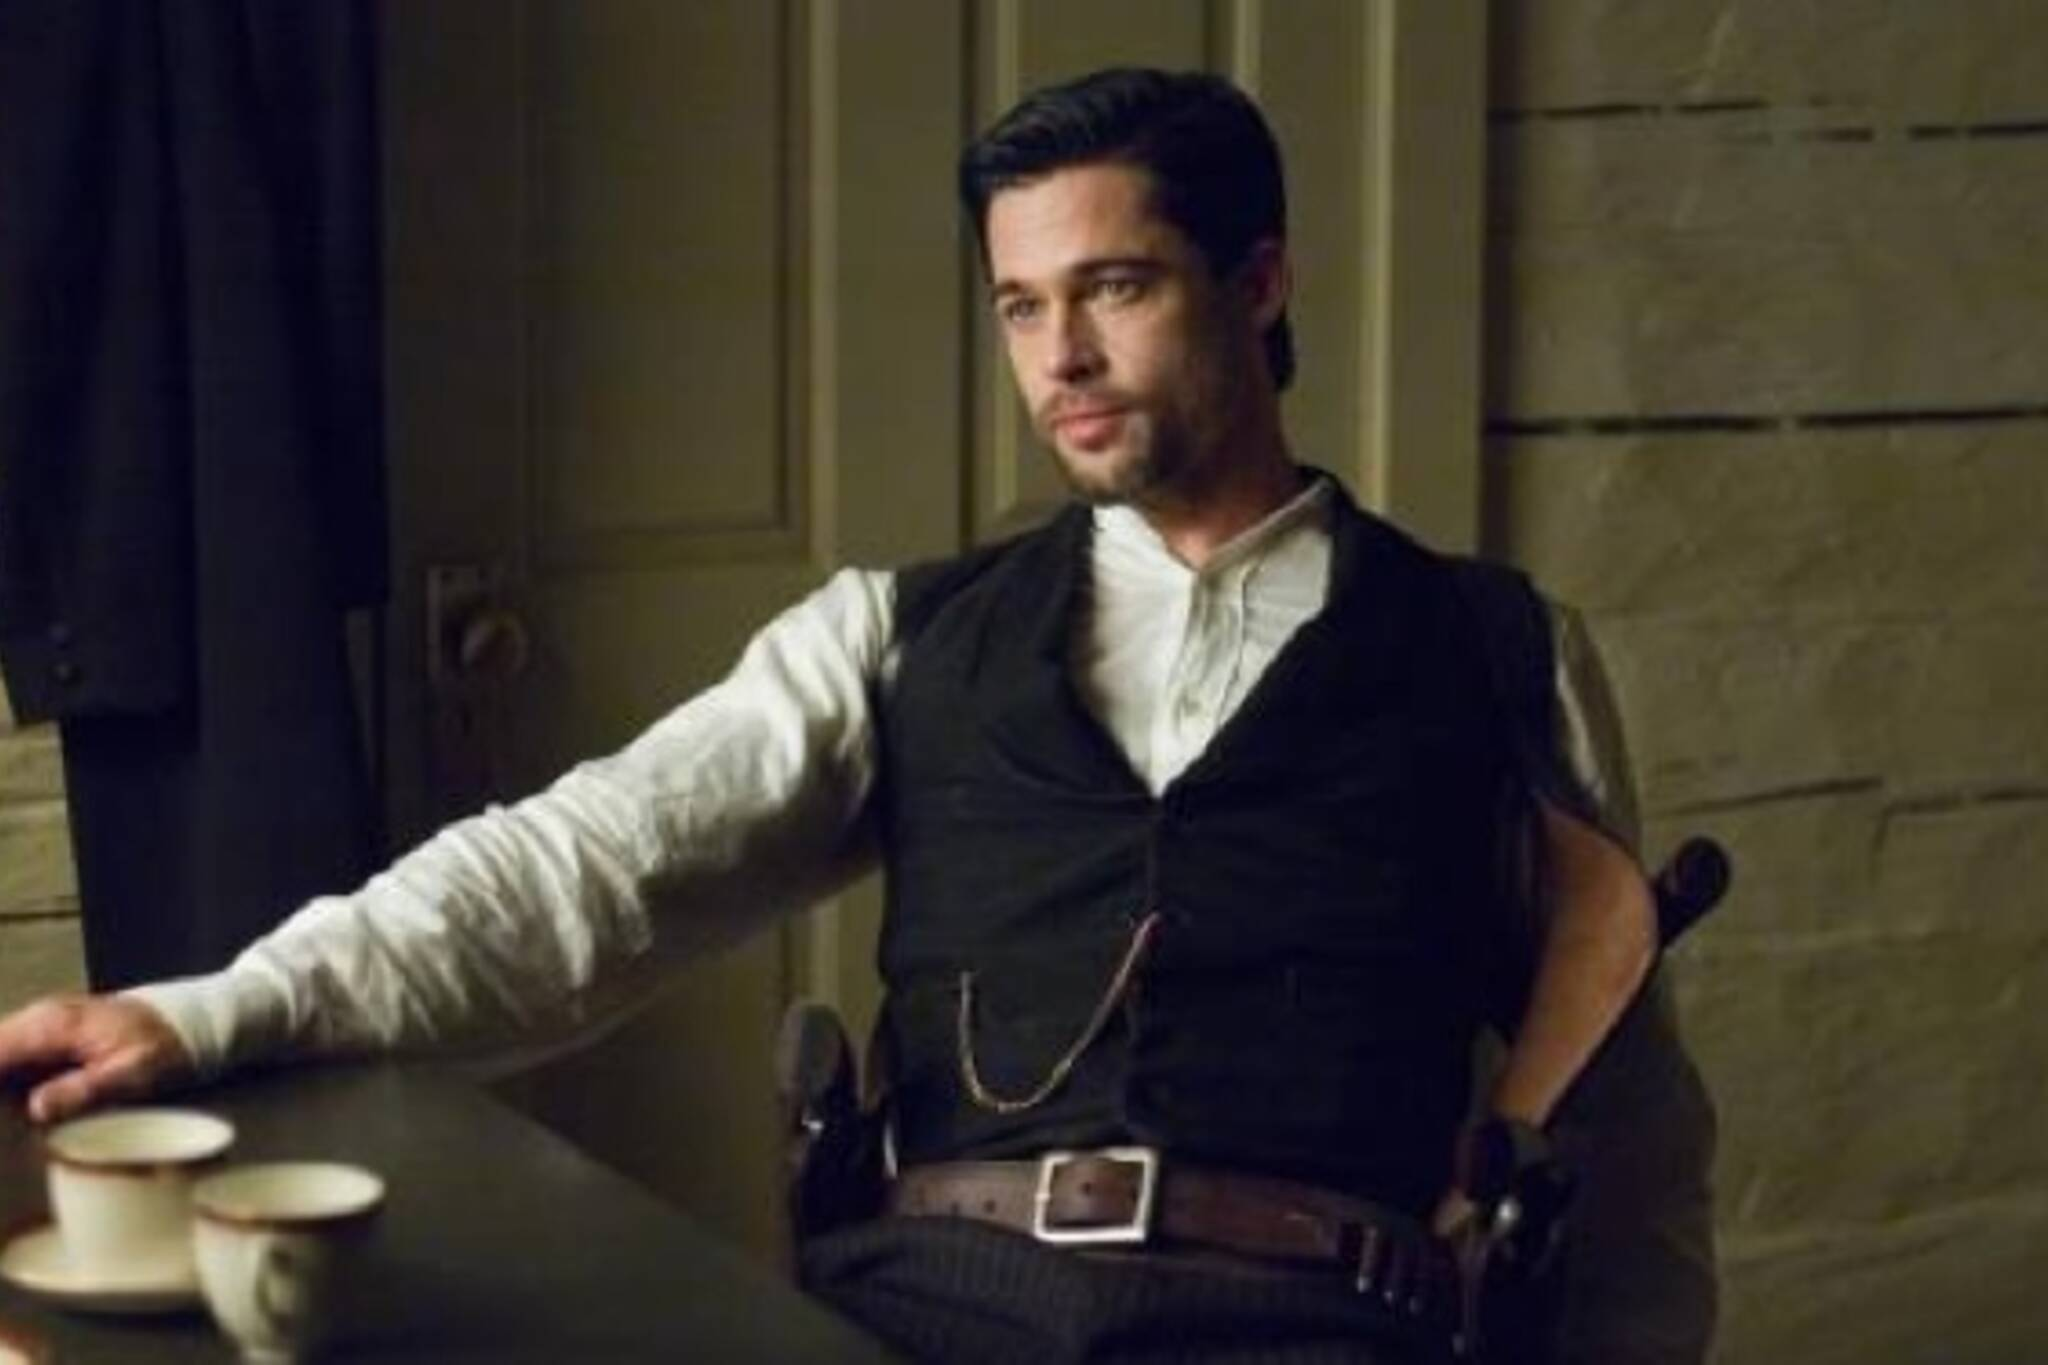 Brad Pitt in The Assassination of Jesse James by the Coward Robert Ford.